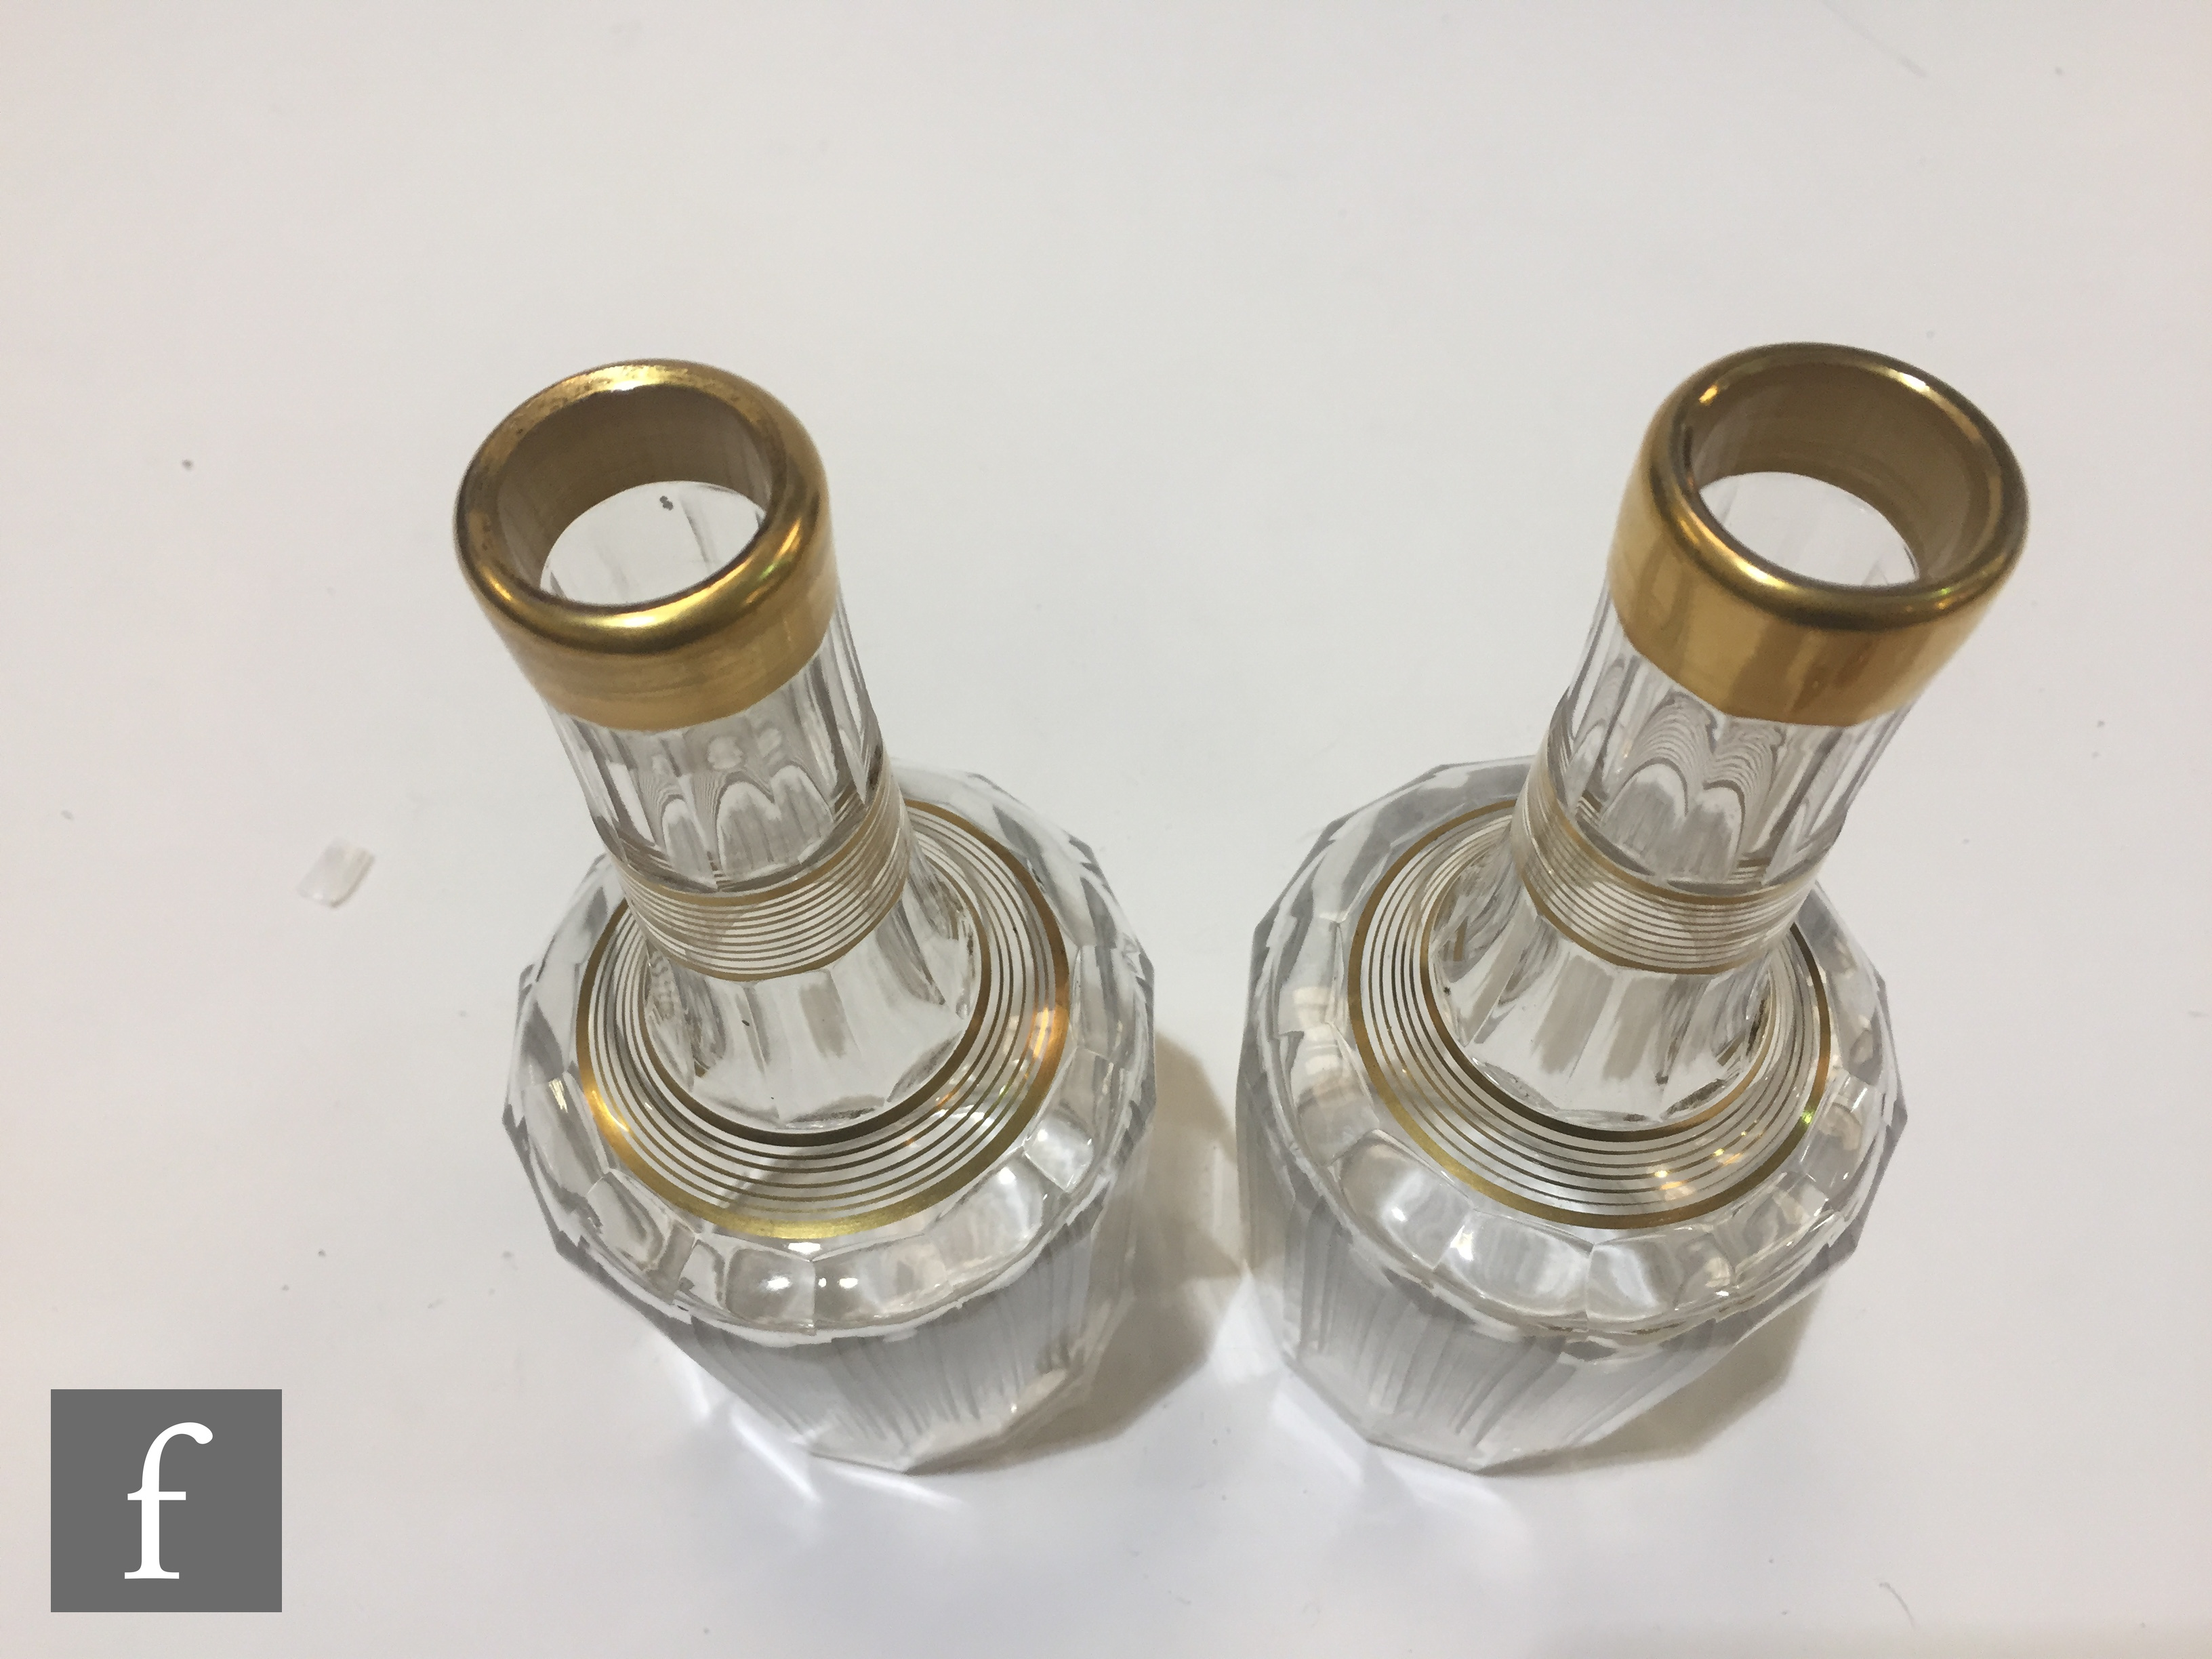 A pair of late 19th Century Baccarat crystal spirit decanters of slice cut shouldered form with a - Image 6 of 6